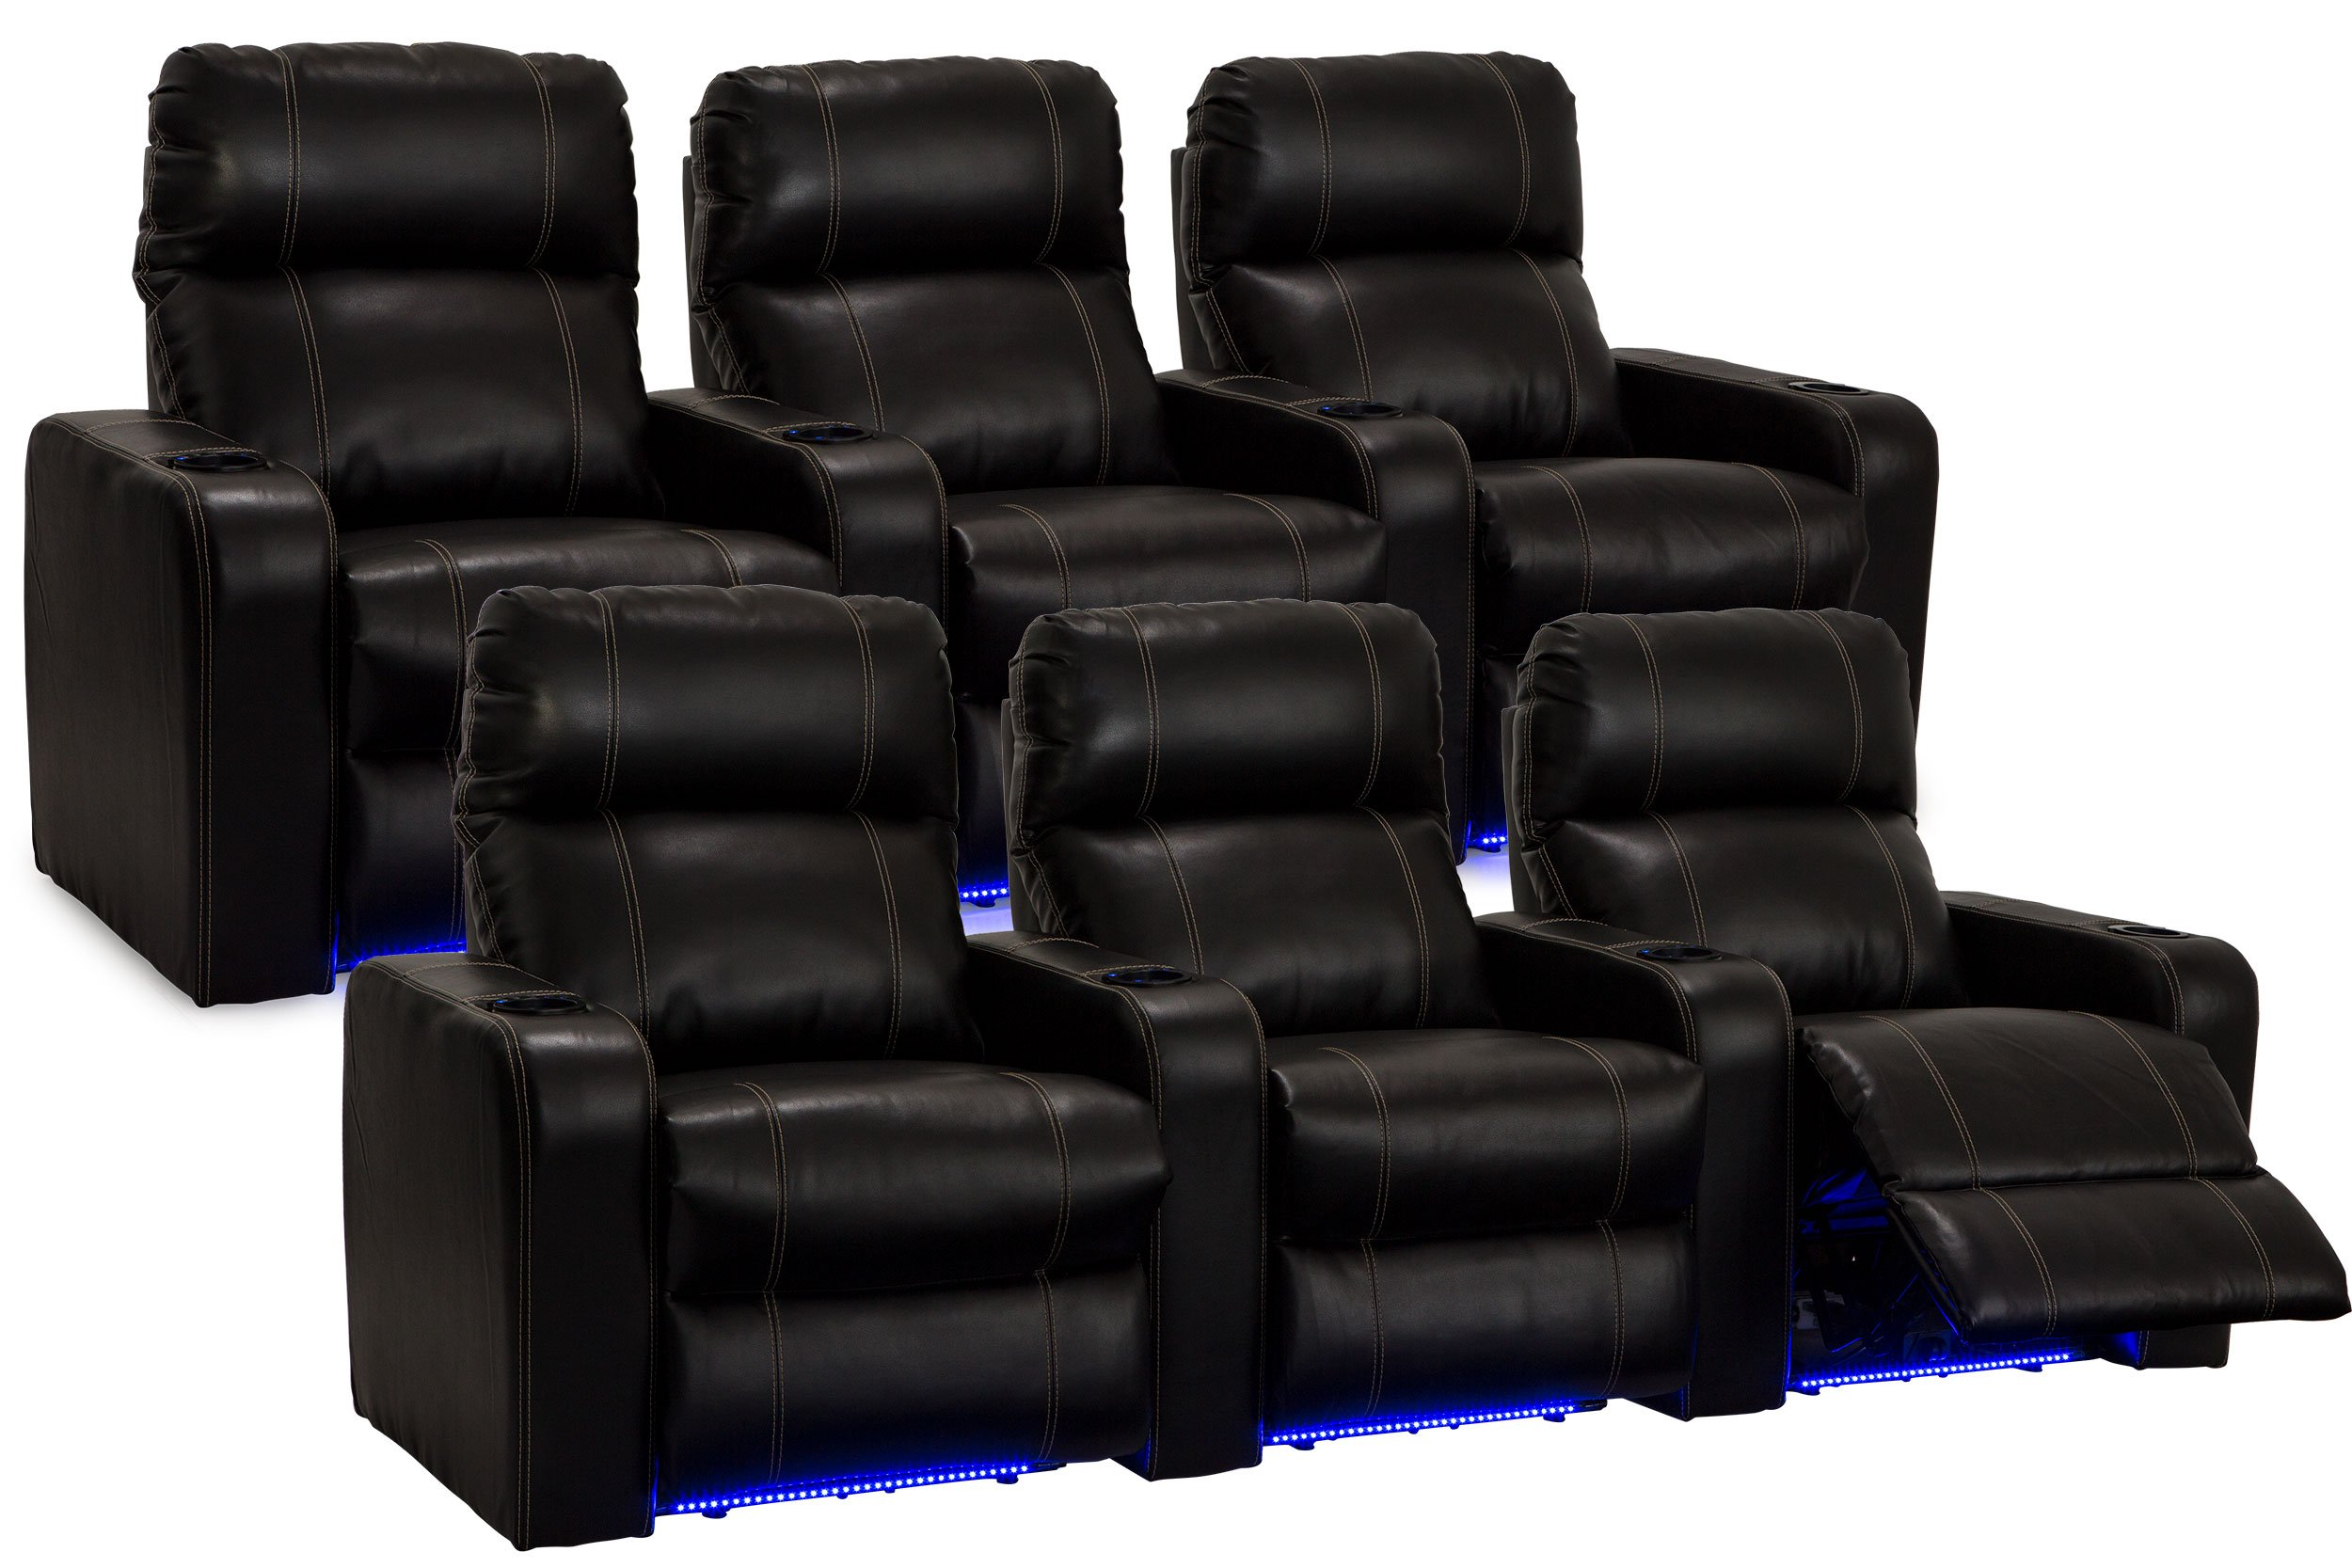 Lane Dynasty Black Bonded Leather Home Theater Seating w/ Base Lights - 2 Rows of 3 Seats - Power Recline